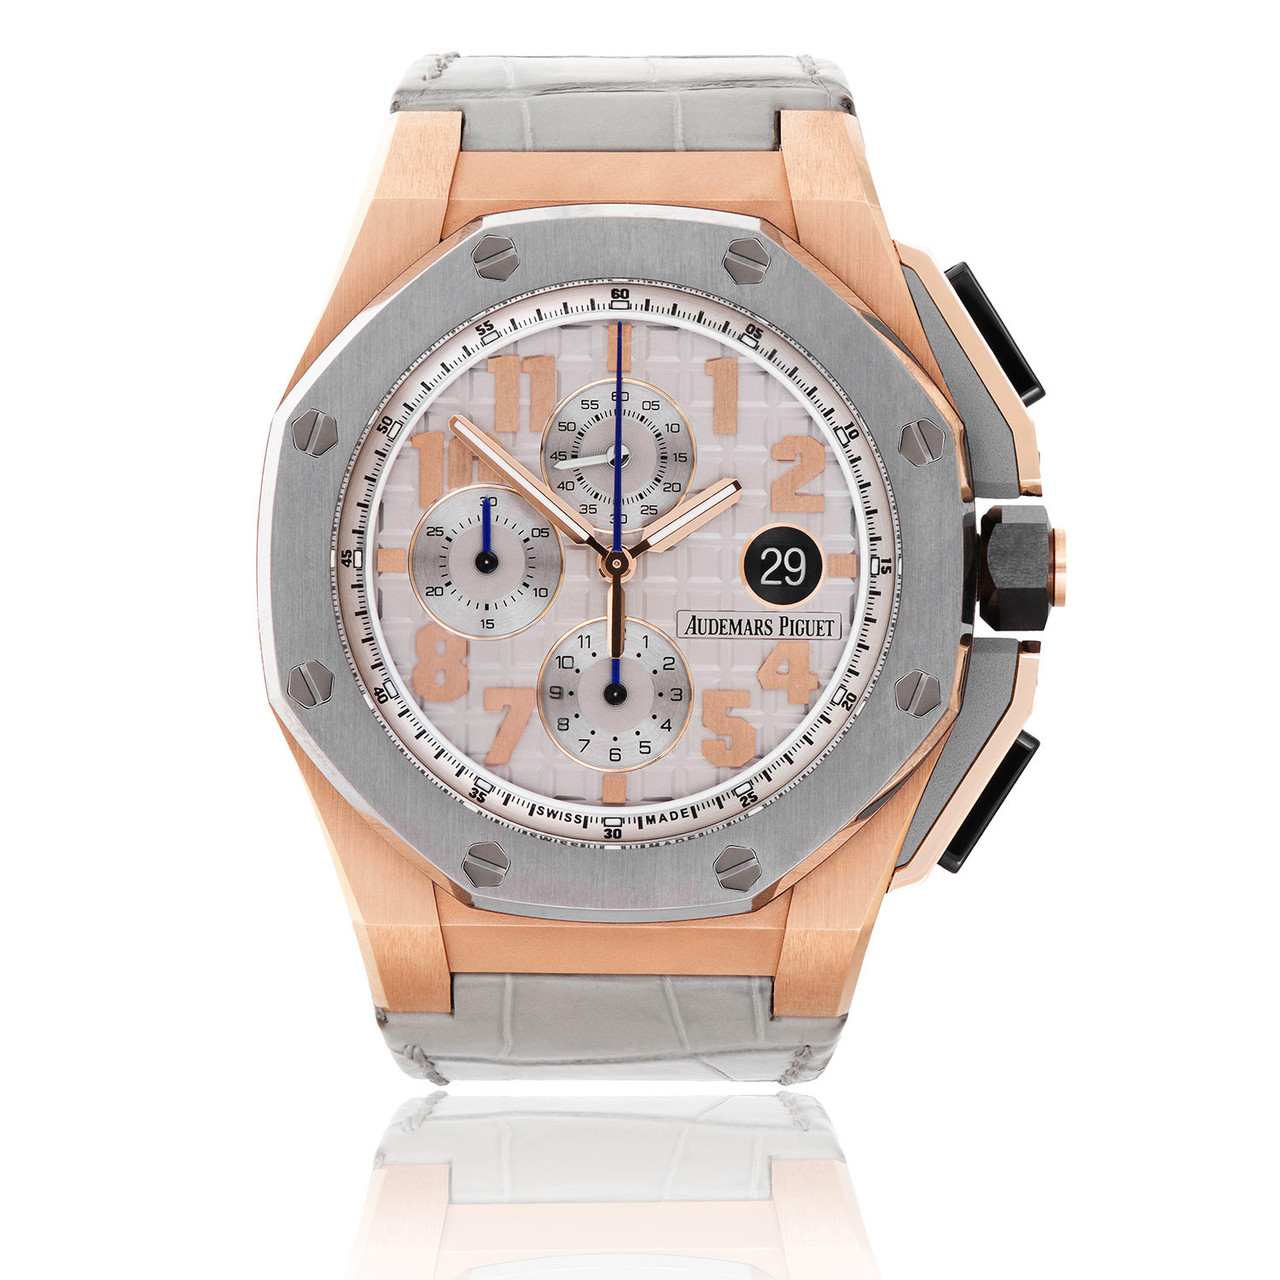 5941b7293d6 Audemars Piguet Royal Oak Offshore Chronograph Lebron James Special Edition  Watch - Shyne Jewelers